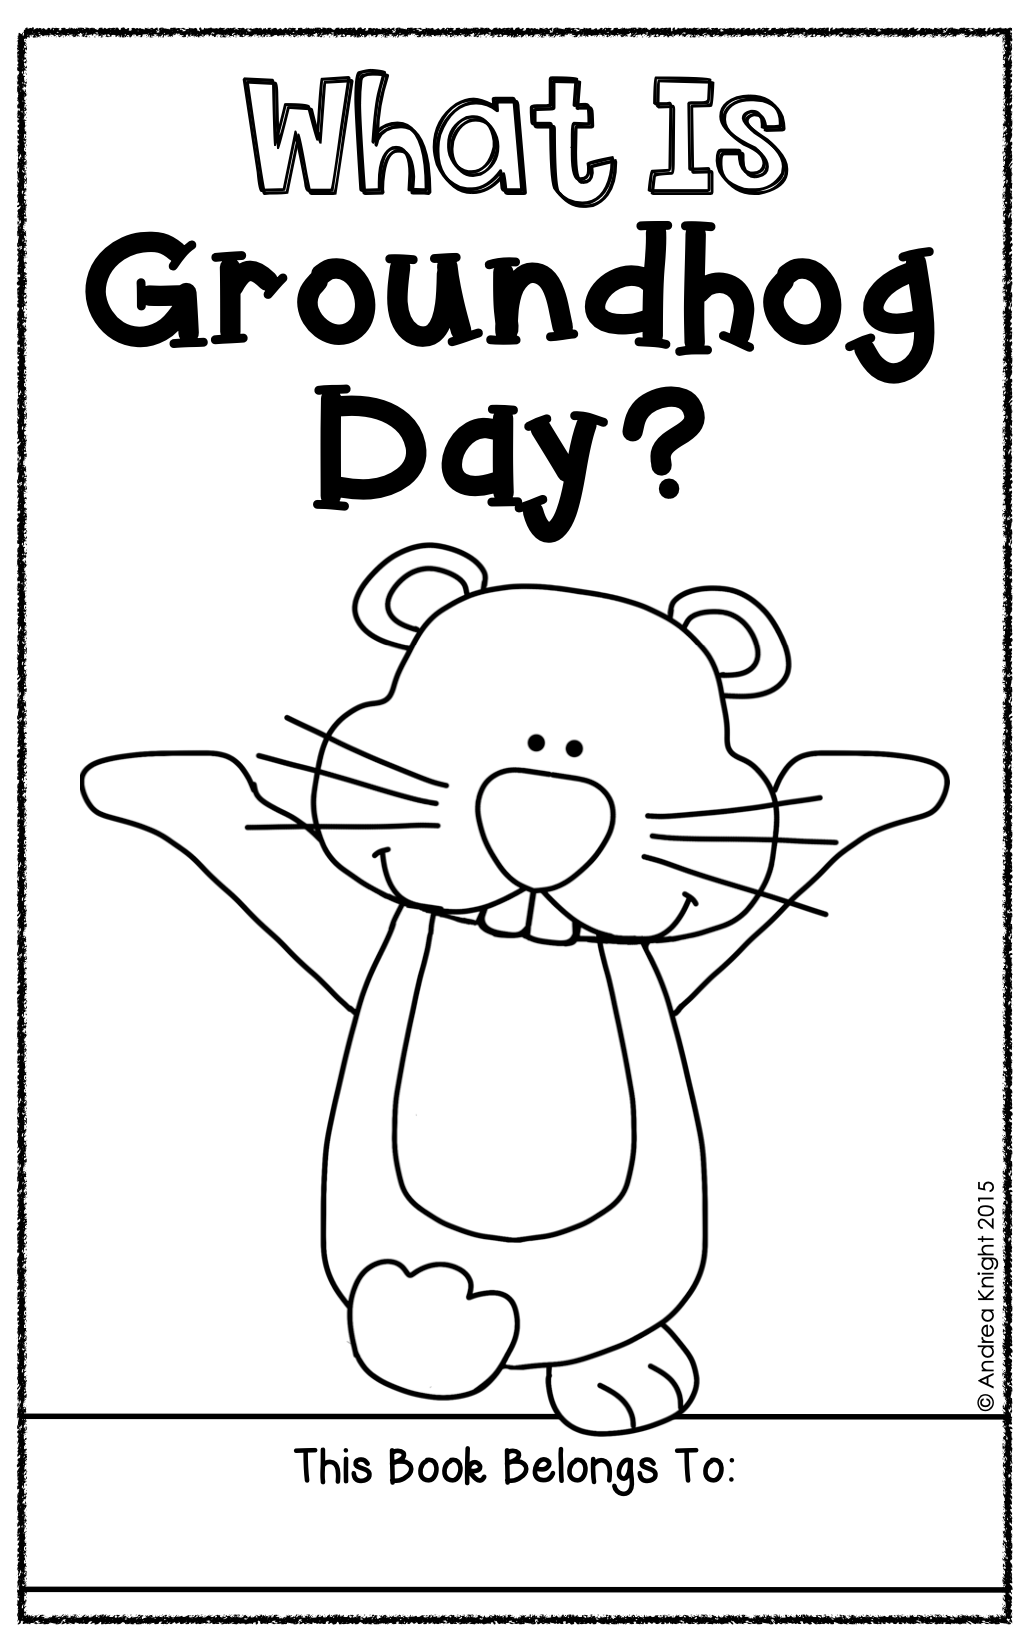 What Is Groundhog Day? (A Holiday Book for Primary